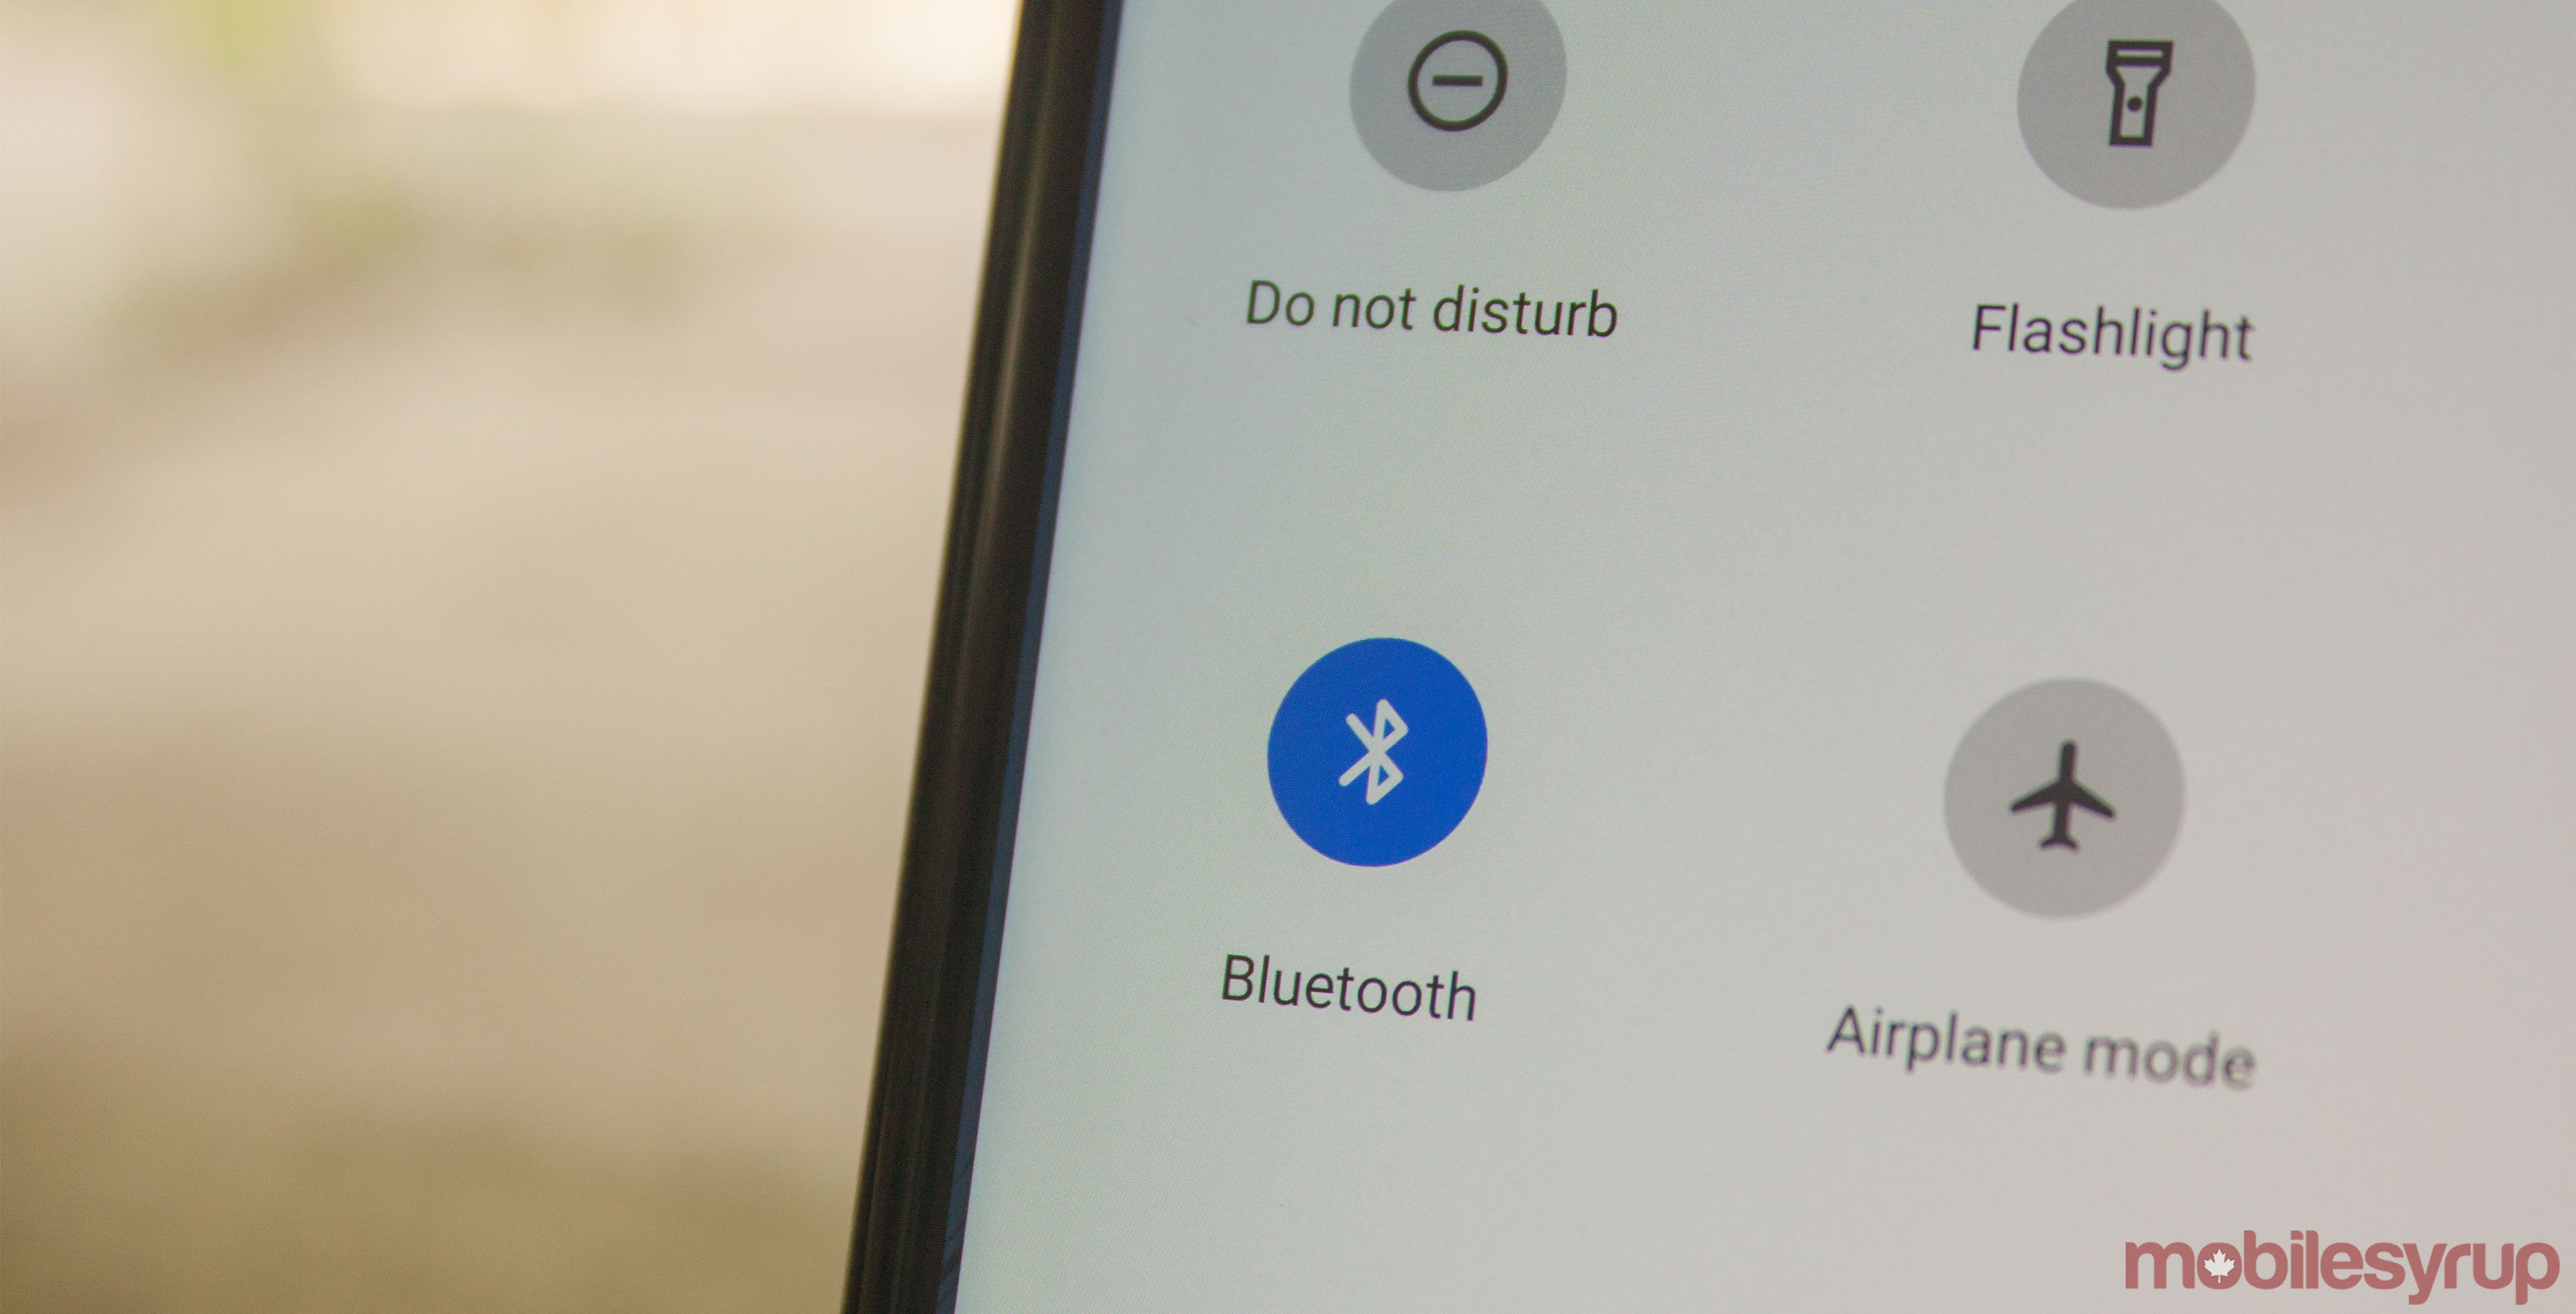 Major Bluetooth security flaw exposes devices to hackers